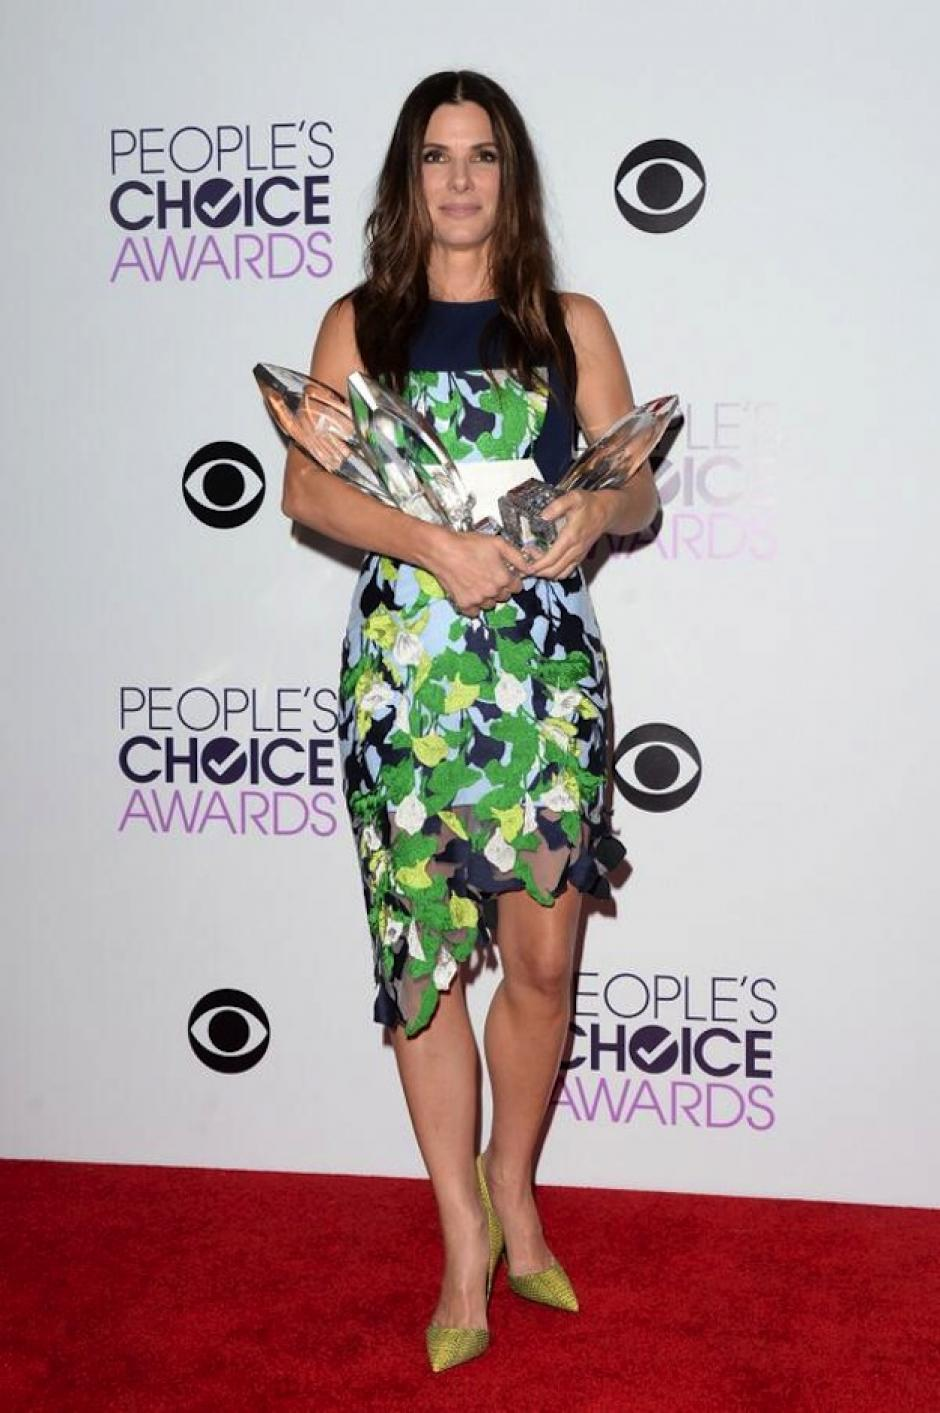 Sandra Bullock arrasó con los premios. (Foto: People's Choice Awards)